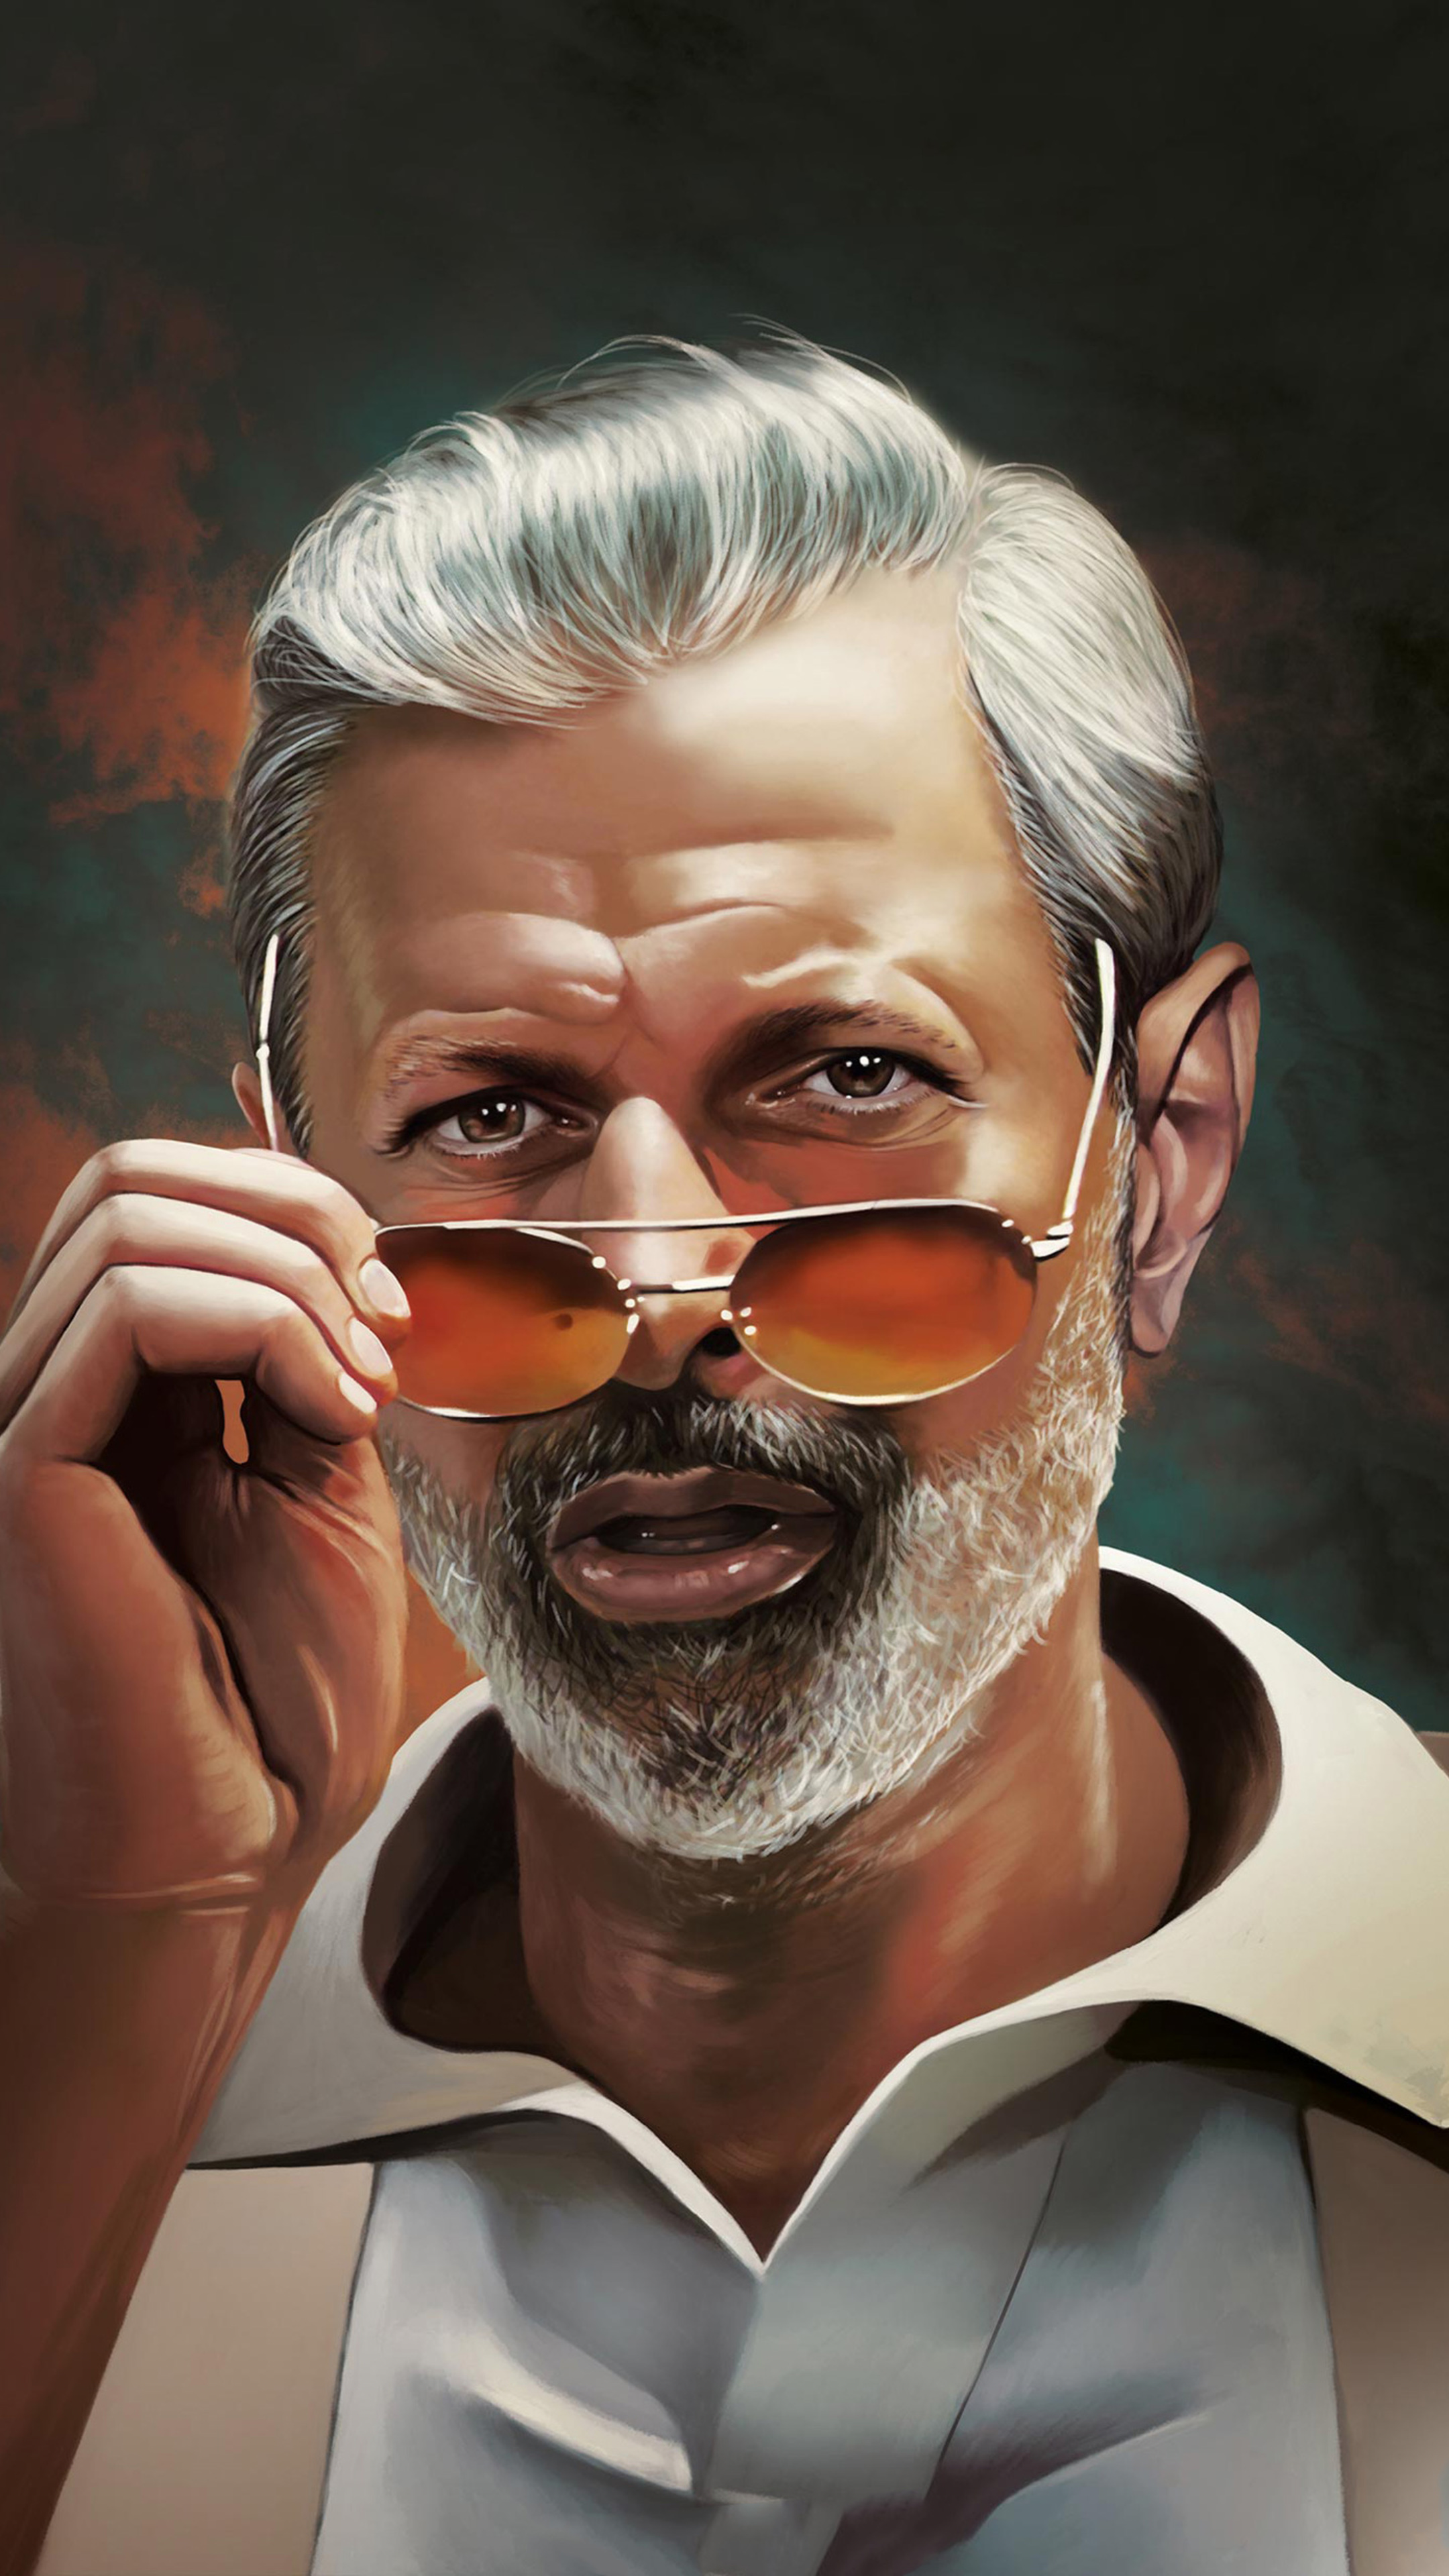 2160x3840 Jeff Goldblum In Hotel Artemis Movie Sony Xperia X,XZ,Z5